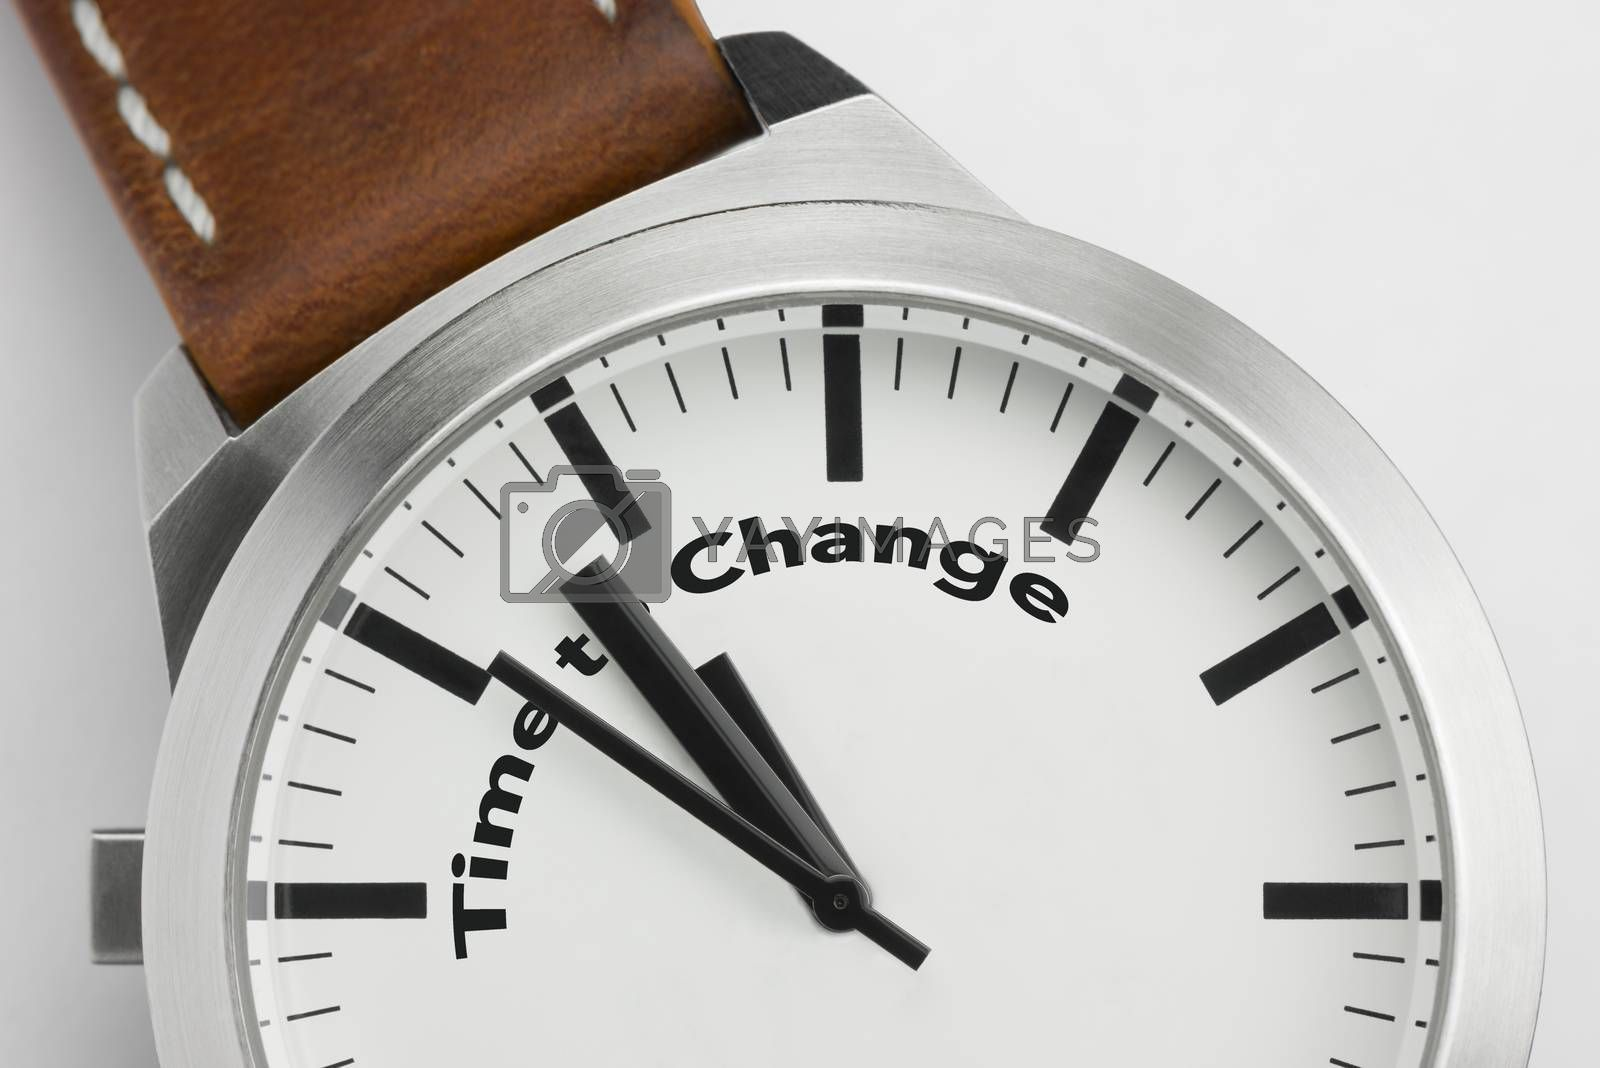 Analog watch with conceptual visualization of the text Time to Change